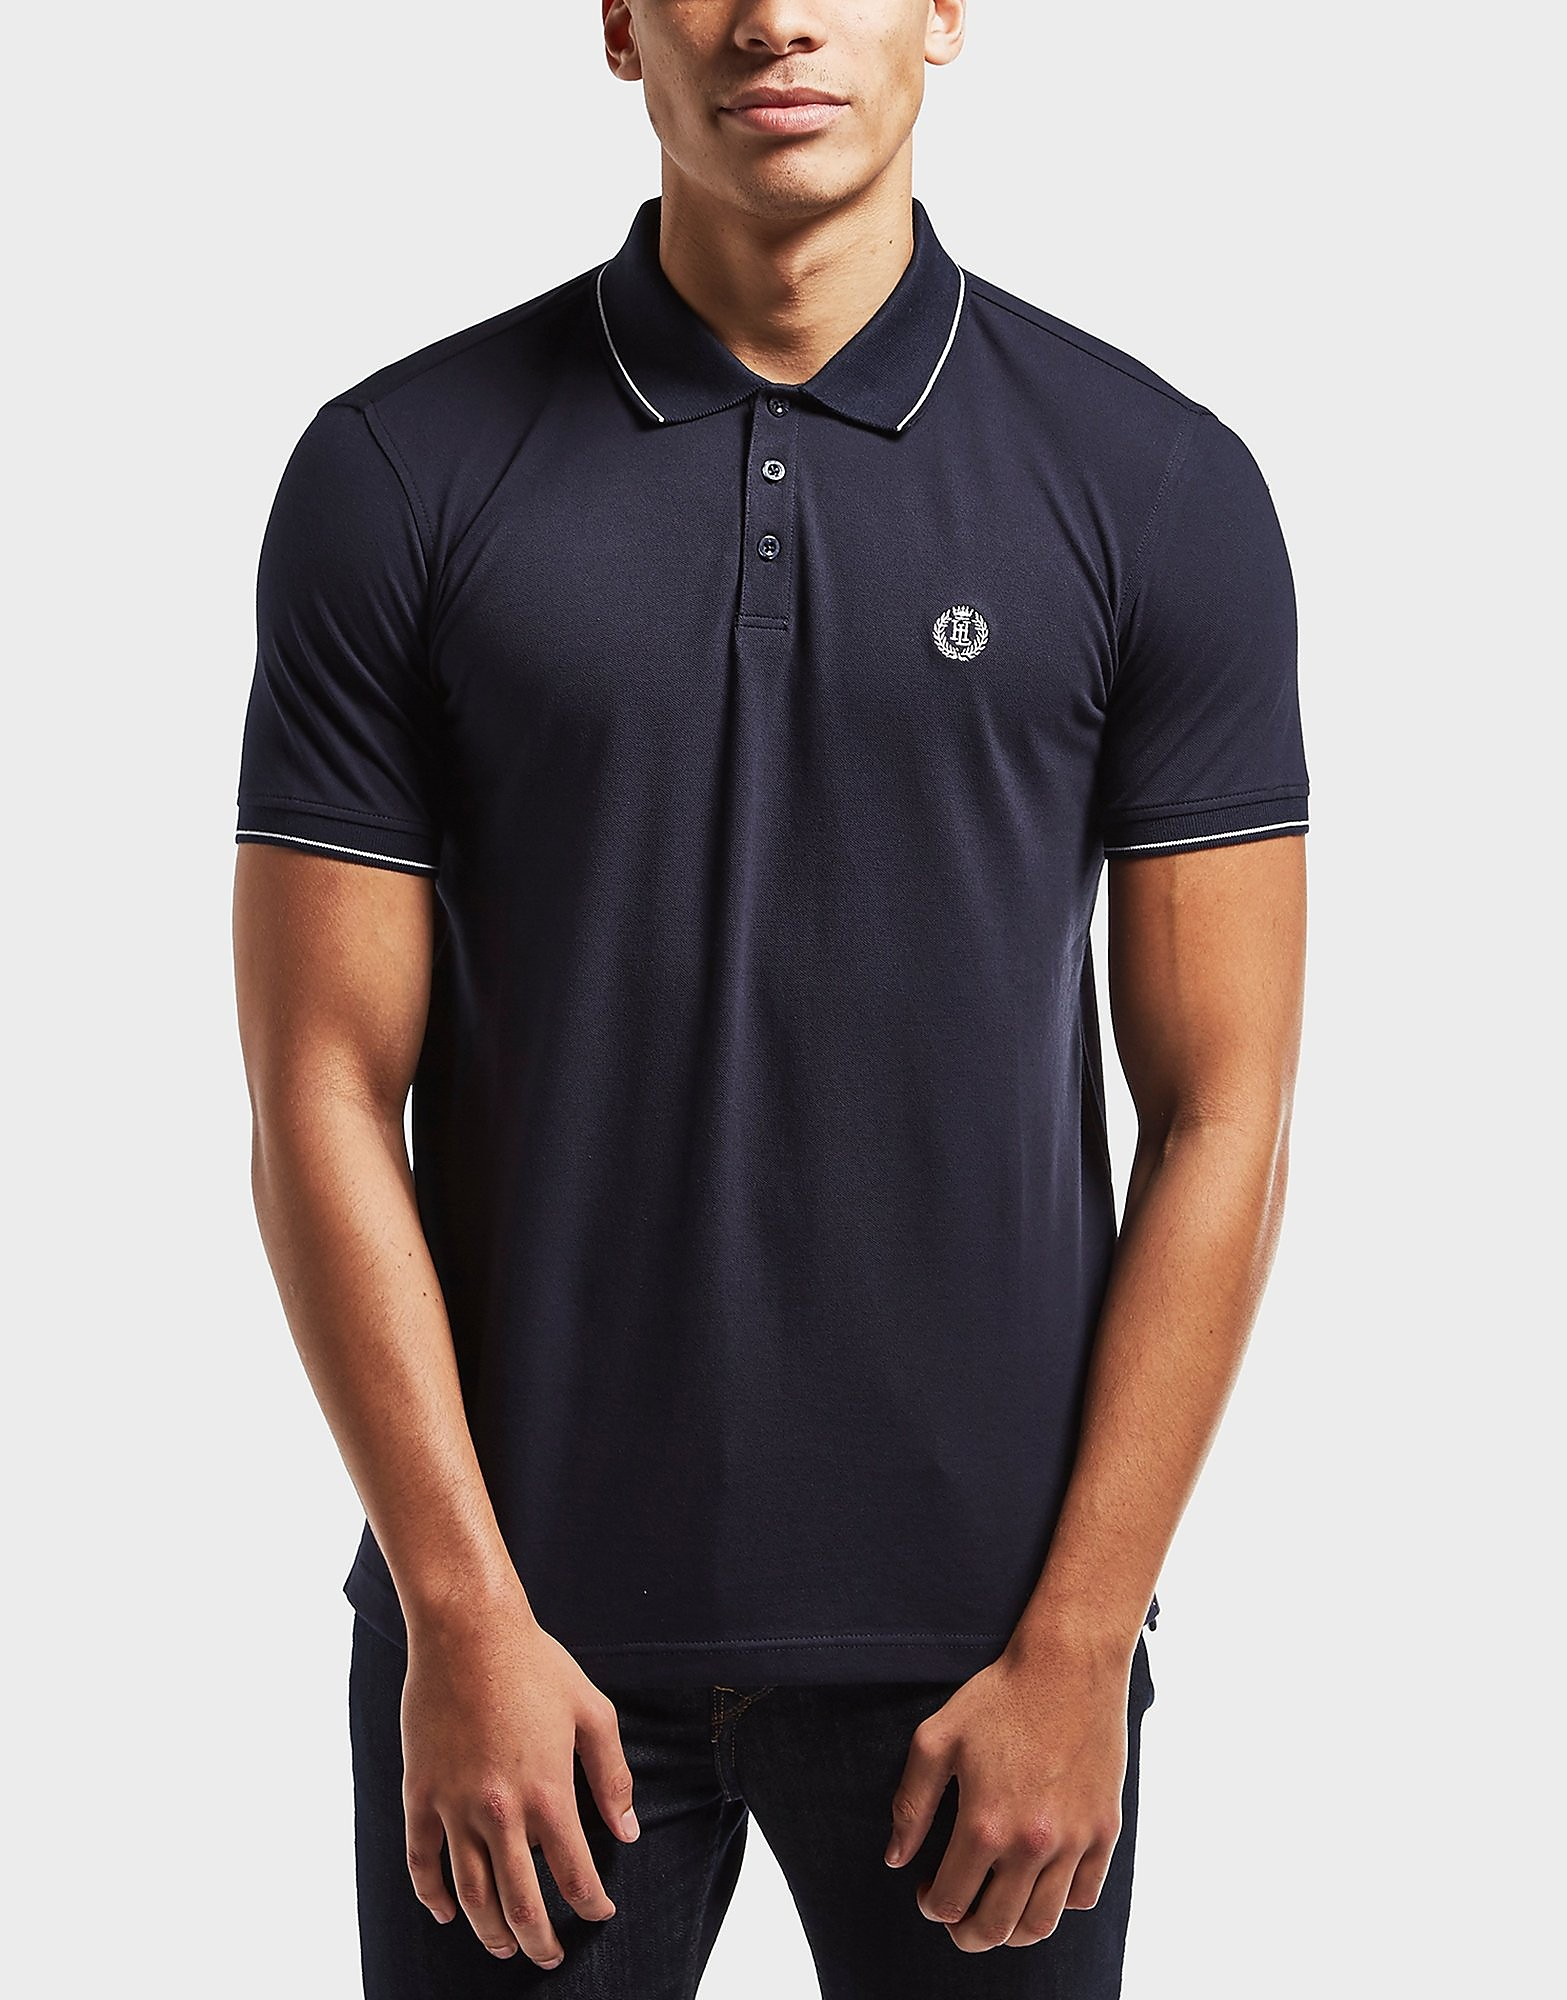 Henri Lloyd Abington Tipped Short Sleeve Polo Shirt